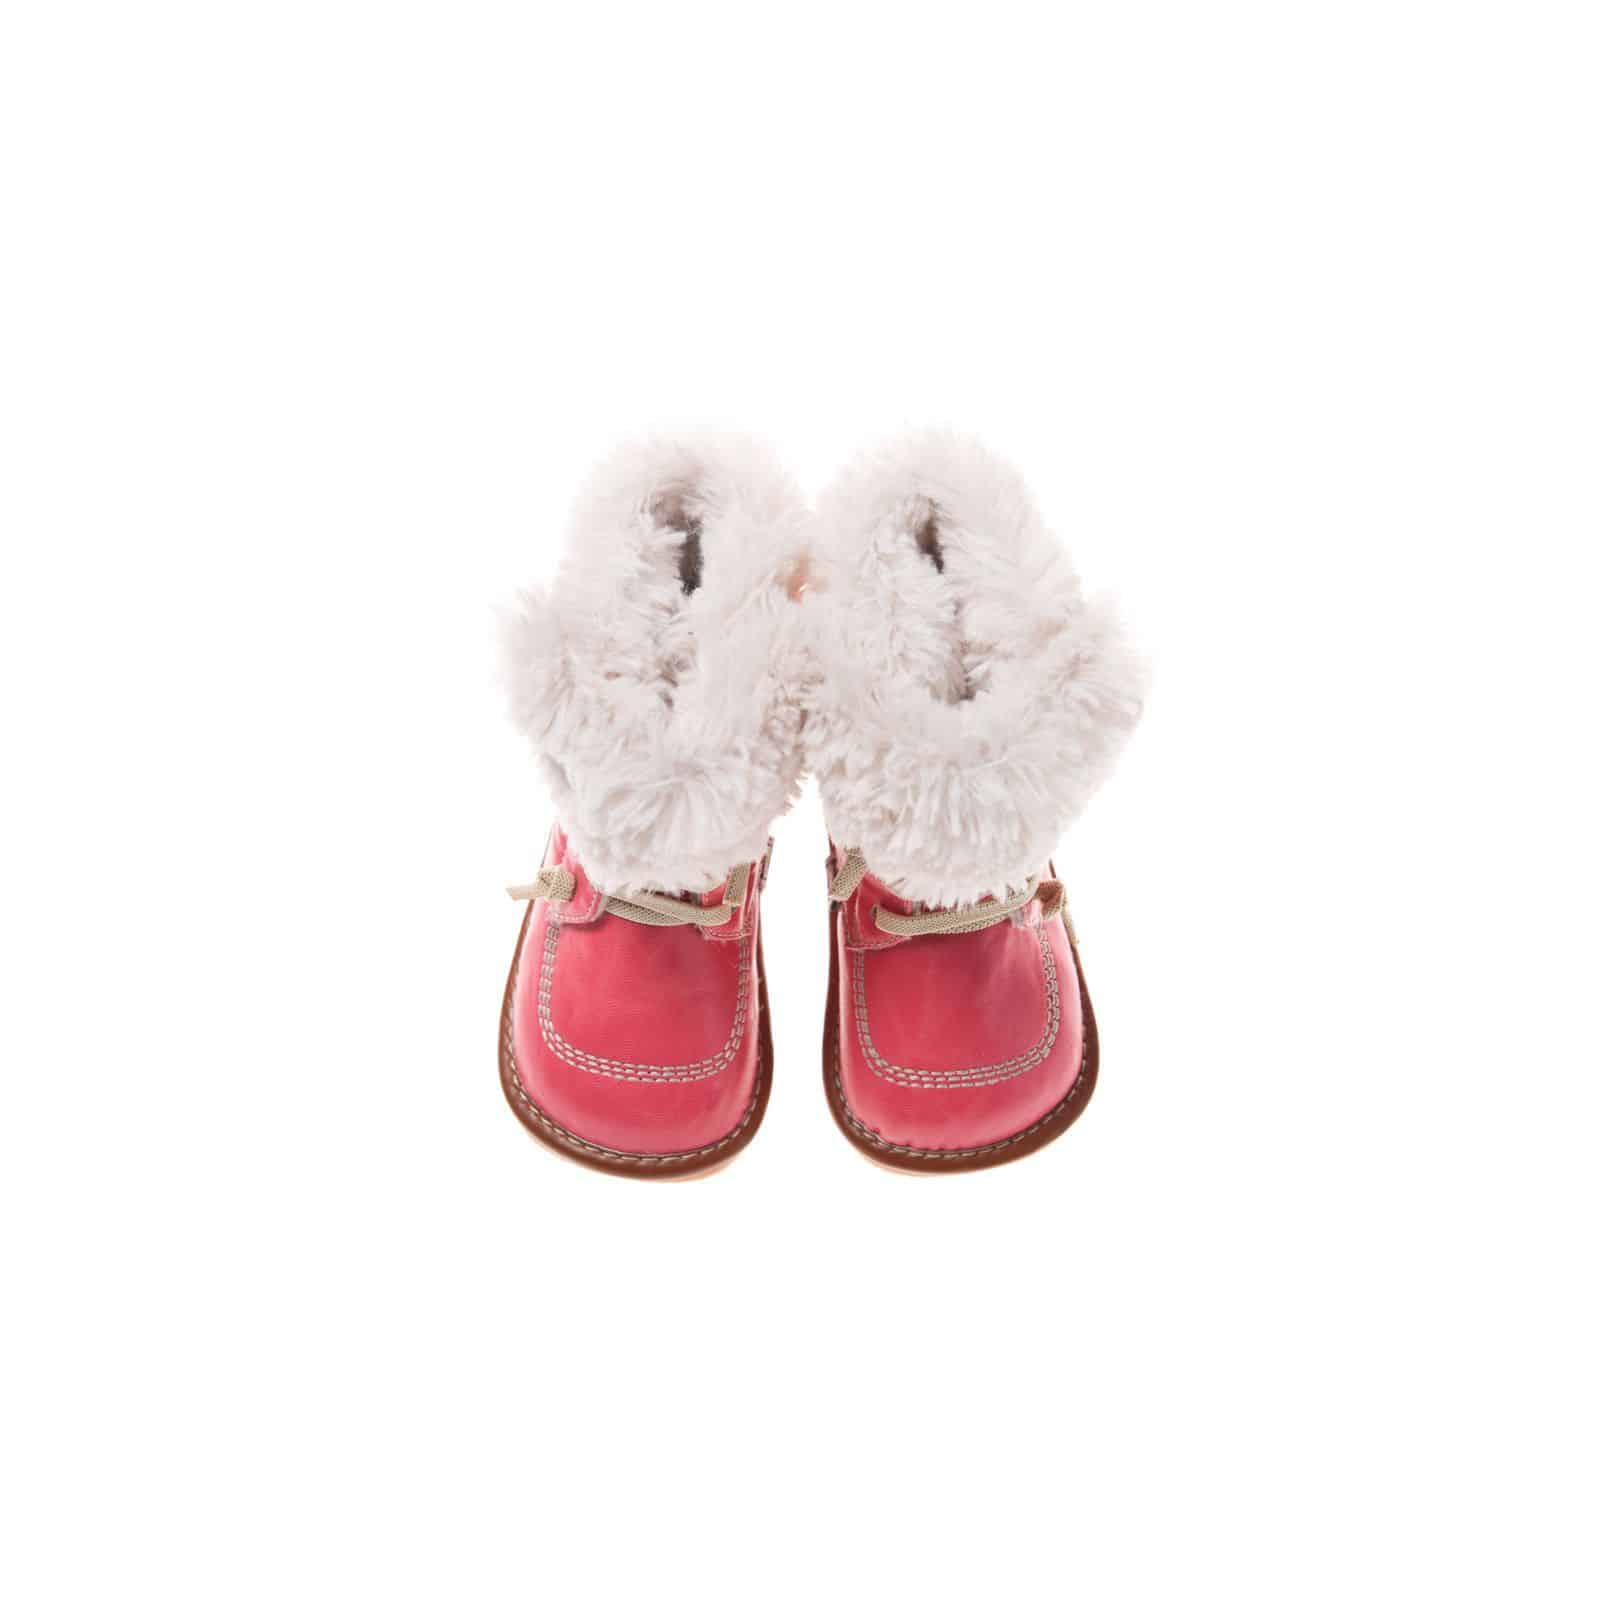 Blue Lamb - Squeaky Leather Toddler Girls Shoes | Pink winter bootees